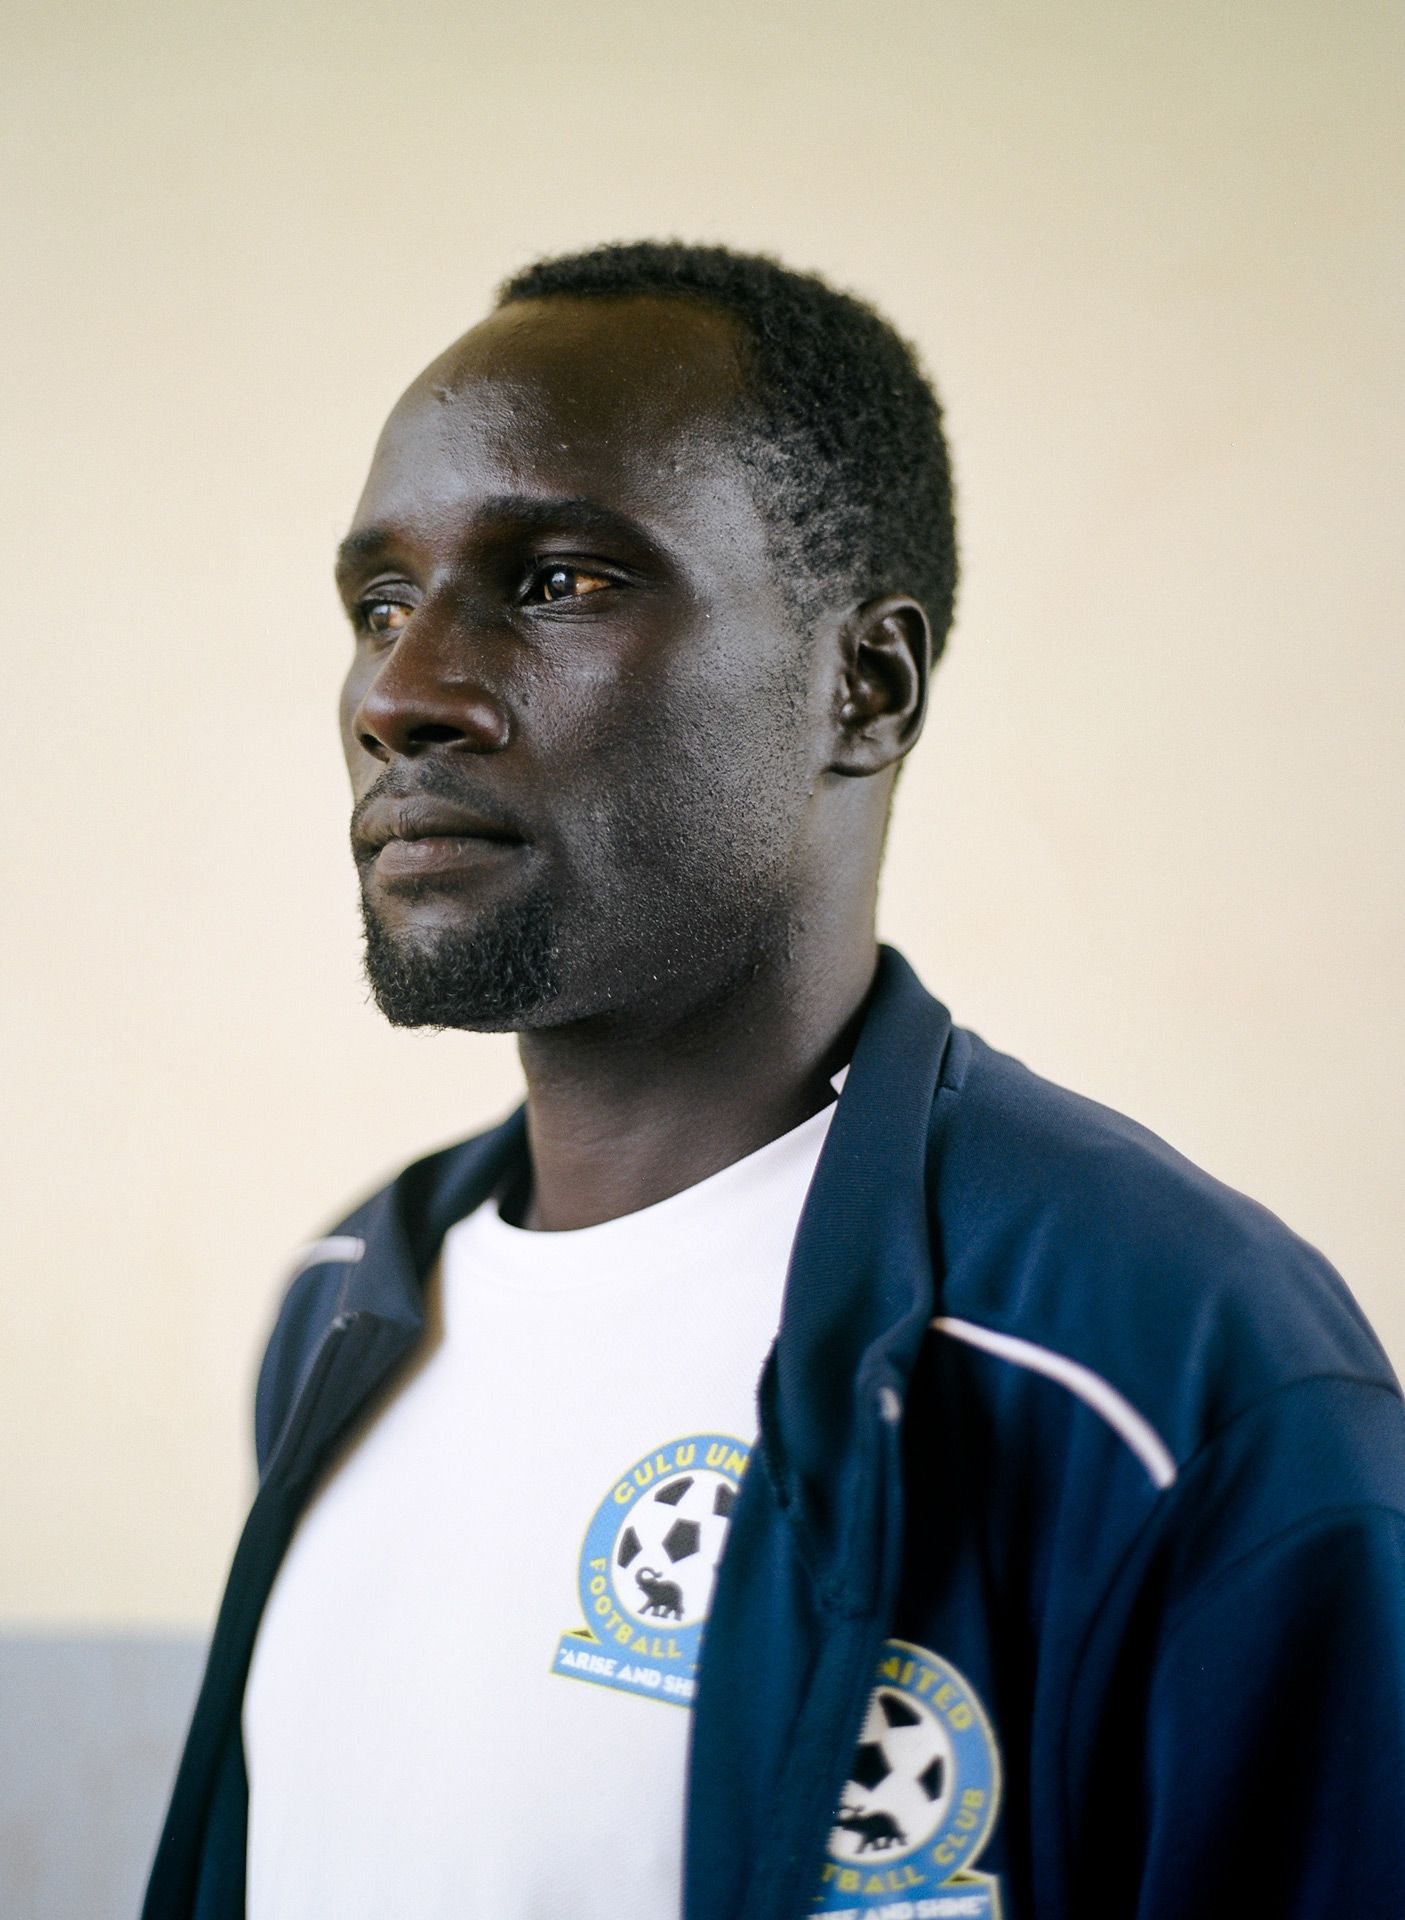 portrait of black man looking away dressed as coach of team by Alexi Hobbs in Uganda for Football for Good with Sportsnet